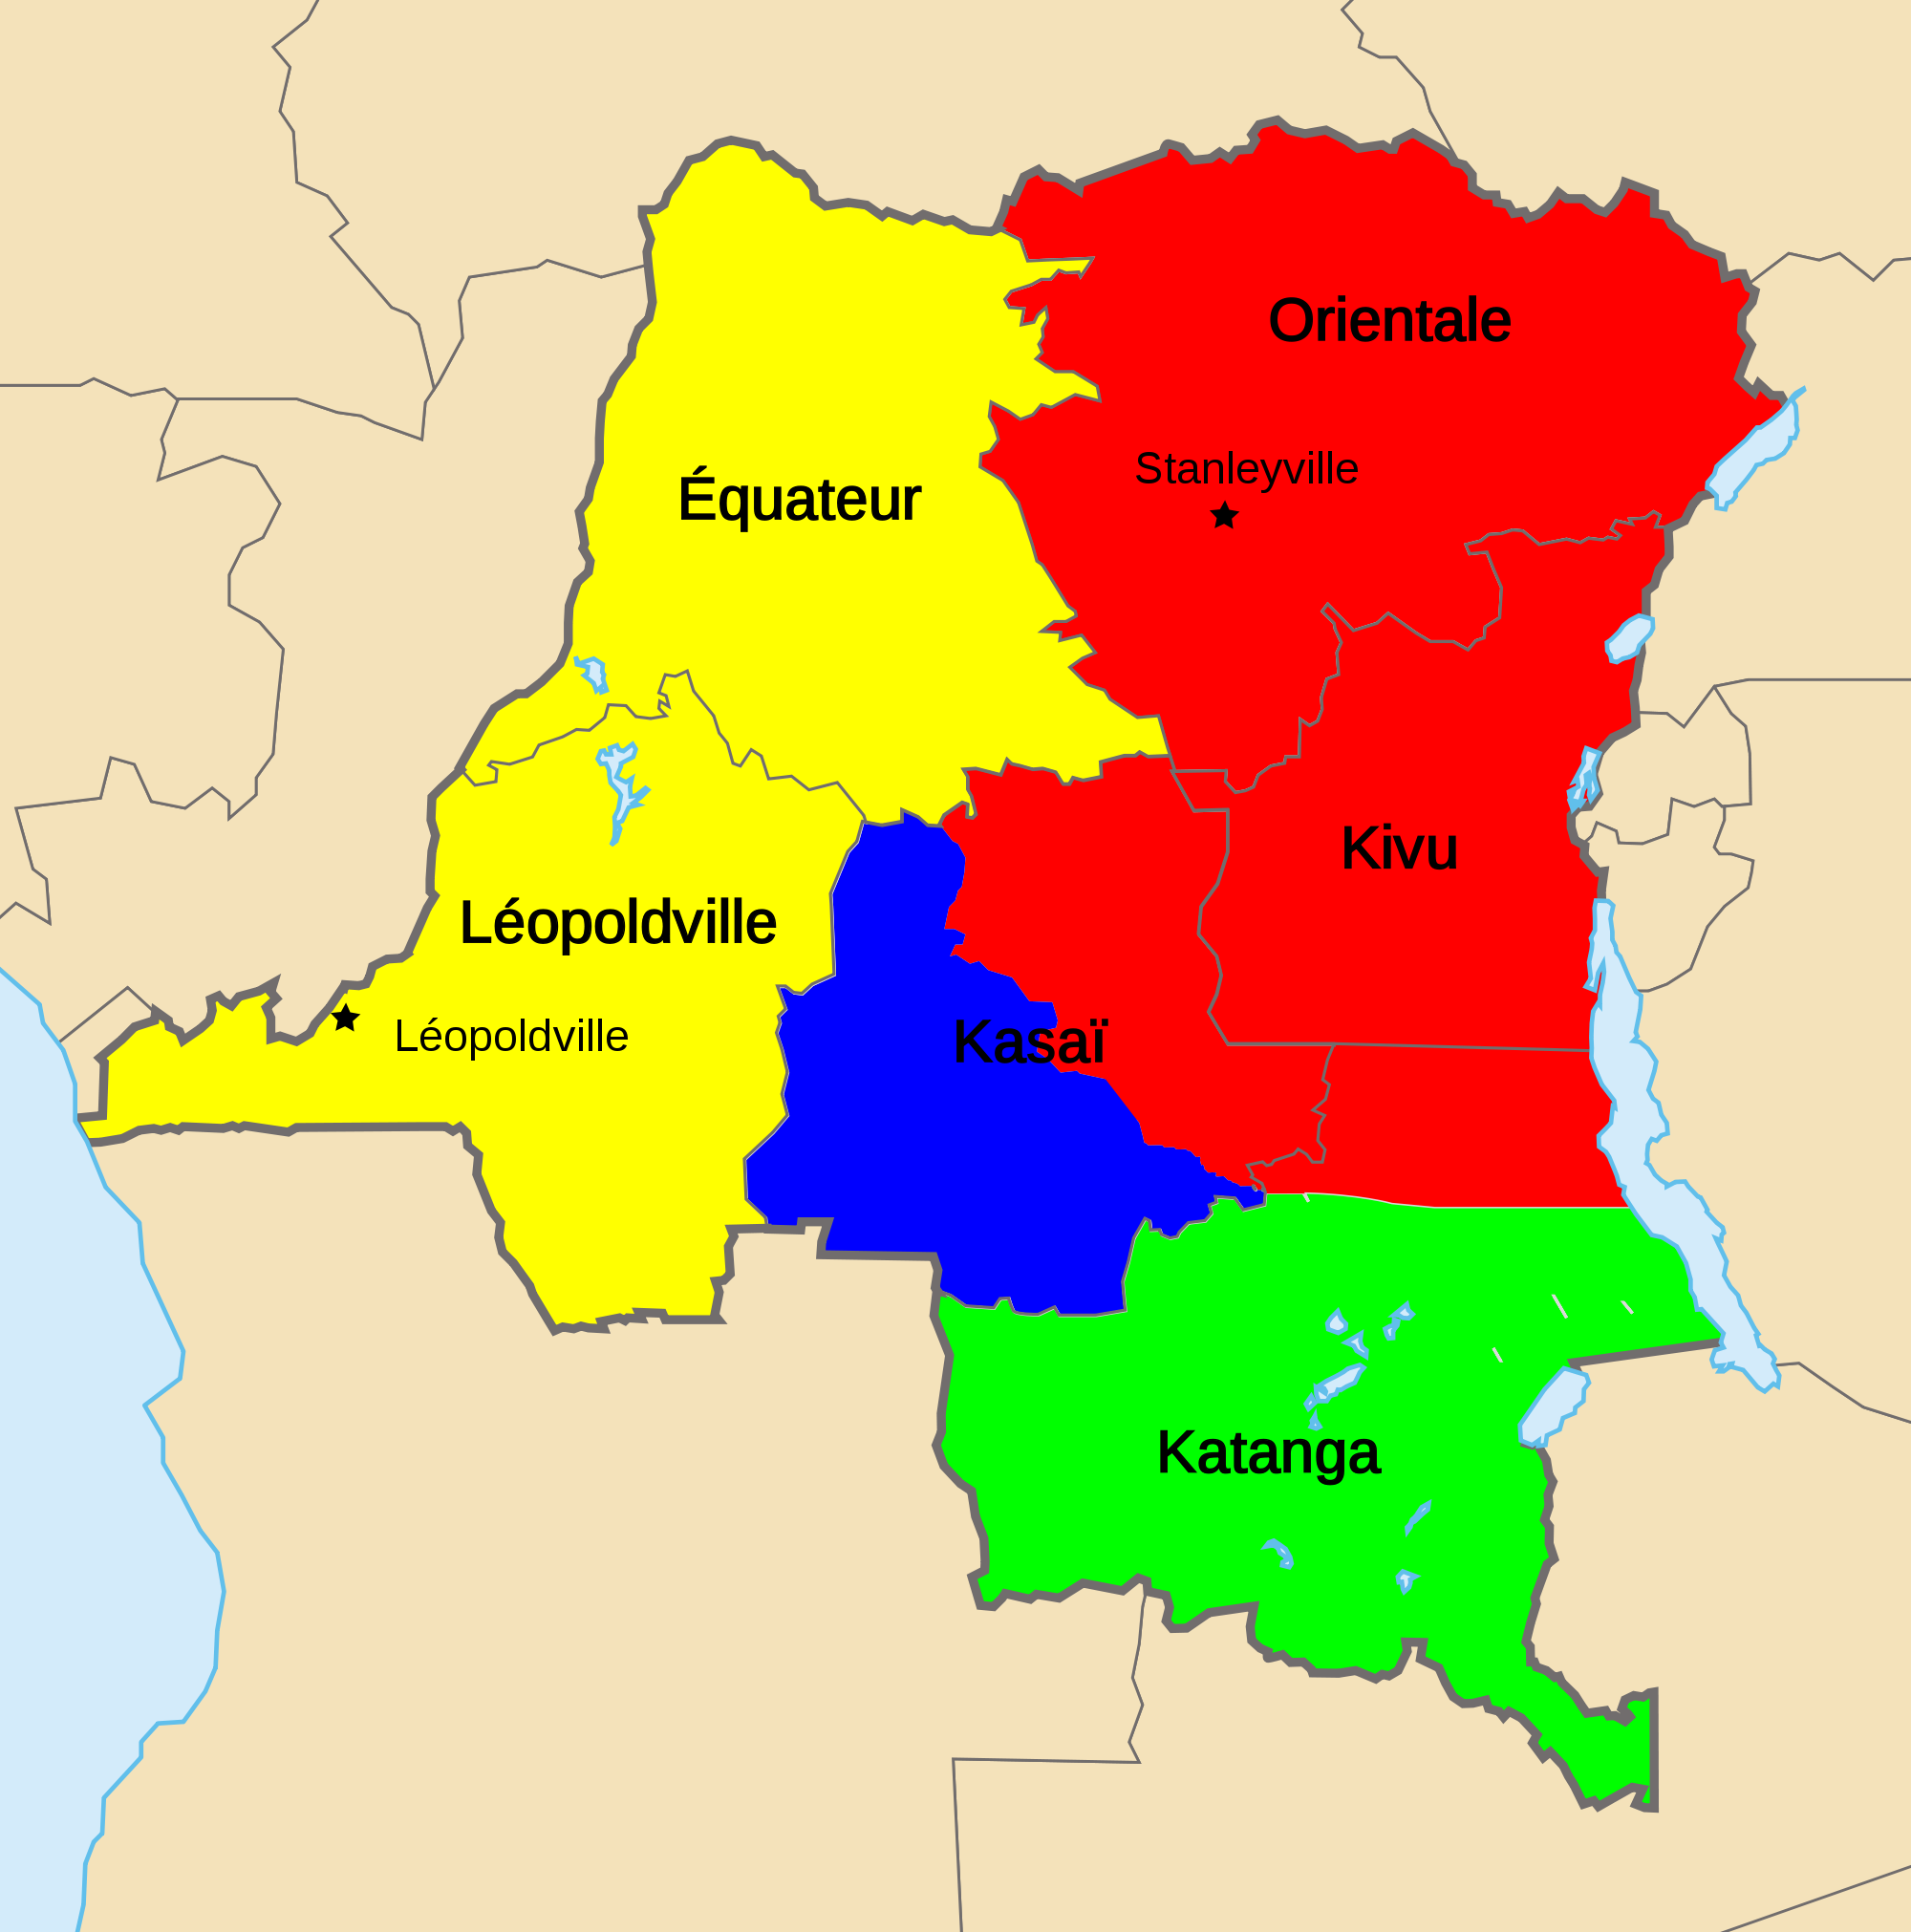 Balkanization of Congo